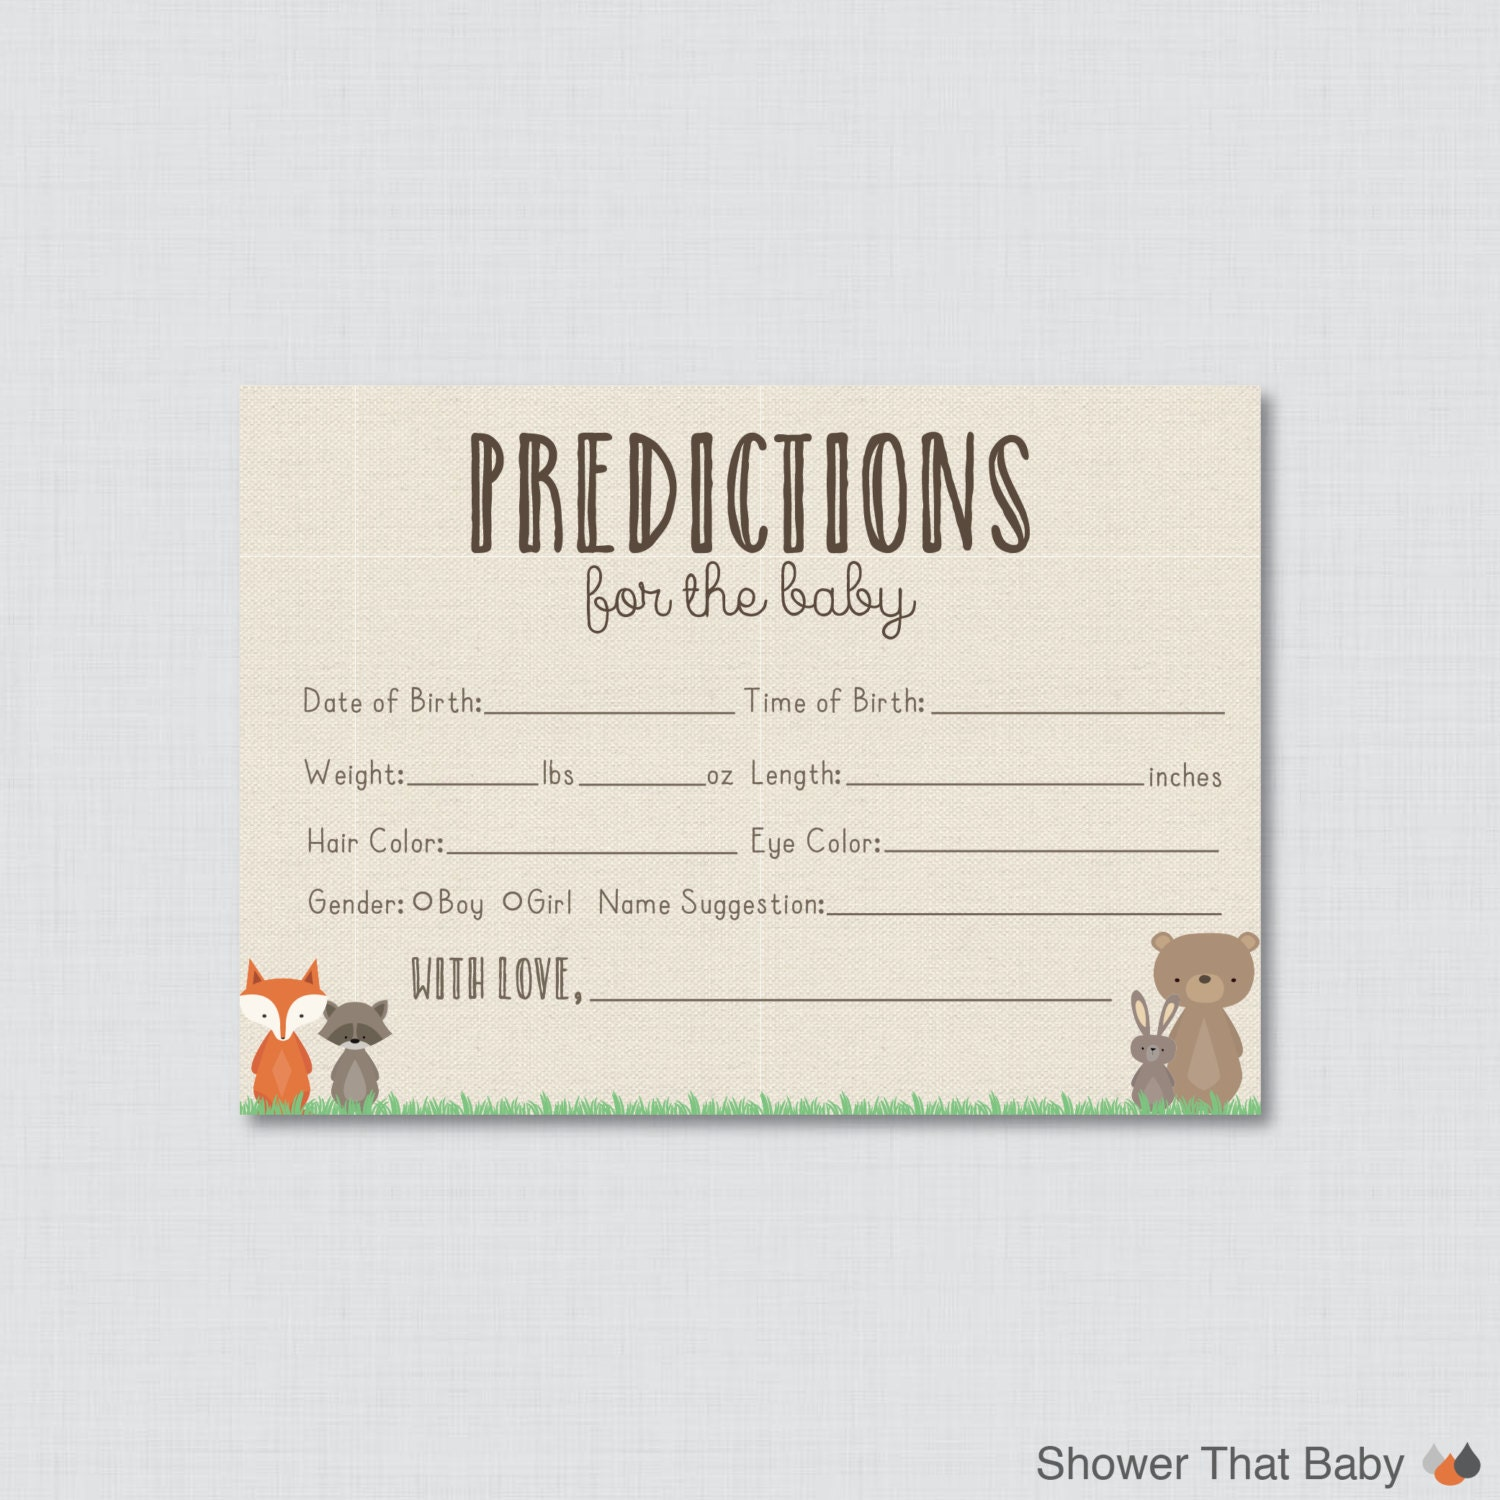 guess the baby weight template - woodland baby shower prediction cards printable instant